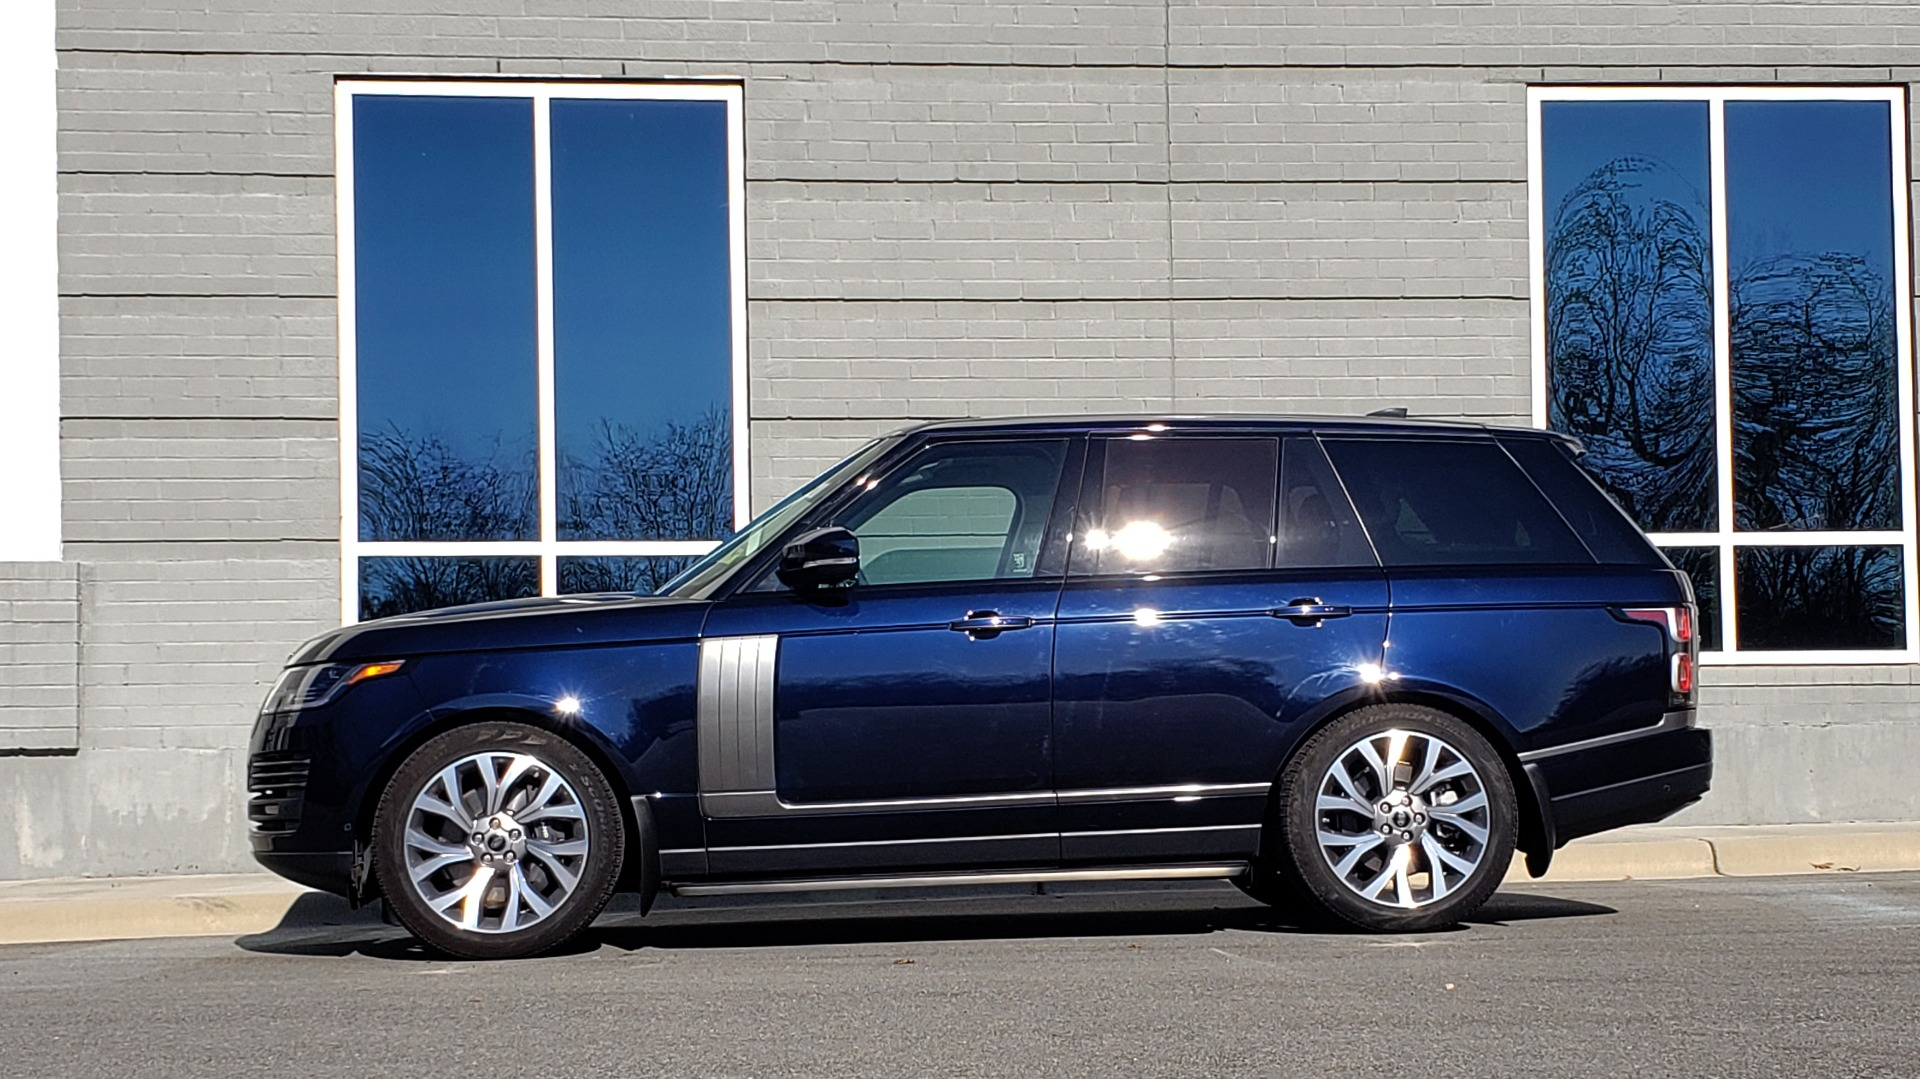 Used 2020 Land Rover RANGE ROVER AUTOBIOGRAPHY HYBRID / NAV / SUNROOF / REARVIEW for sale $110,000 at Formula Imports in Charlotte NC 28227 2